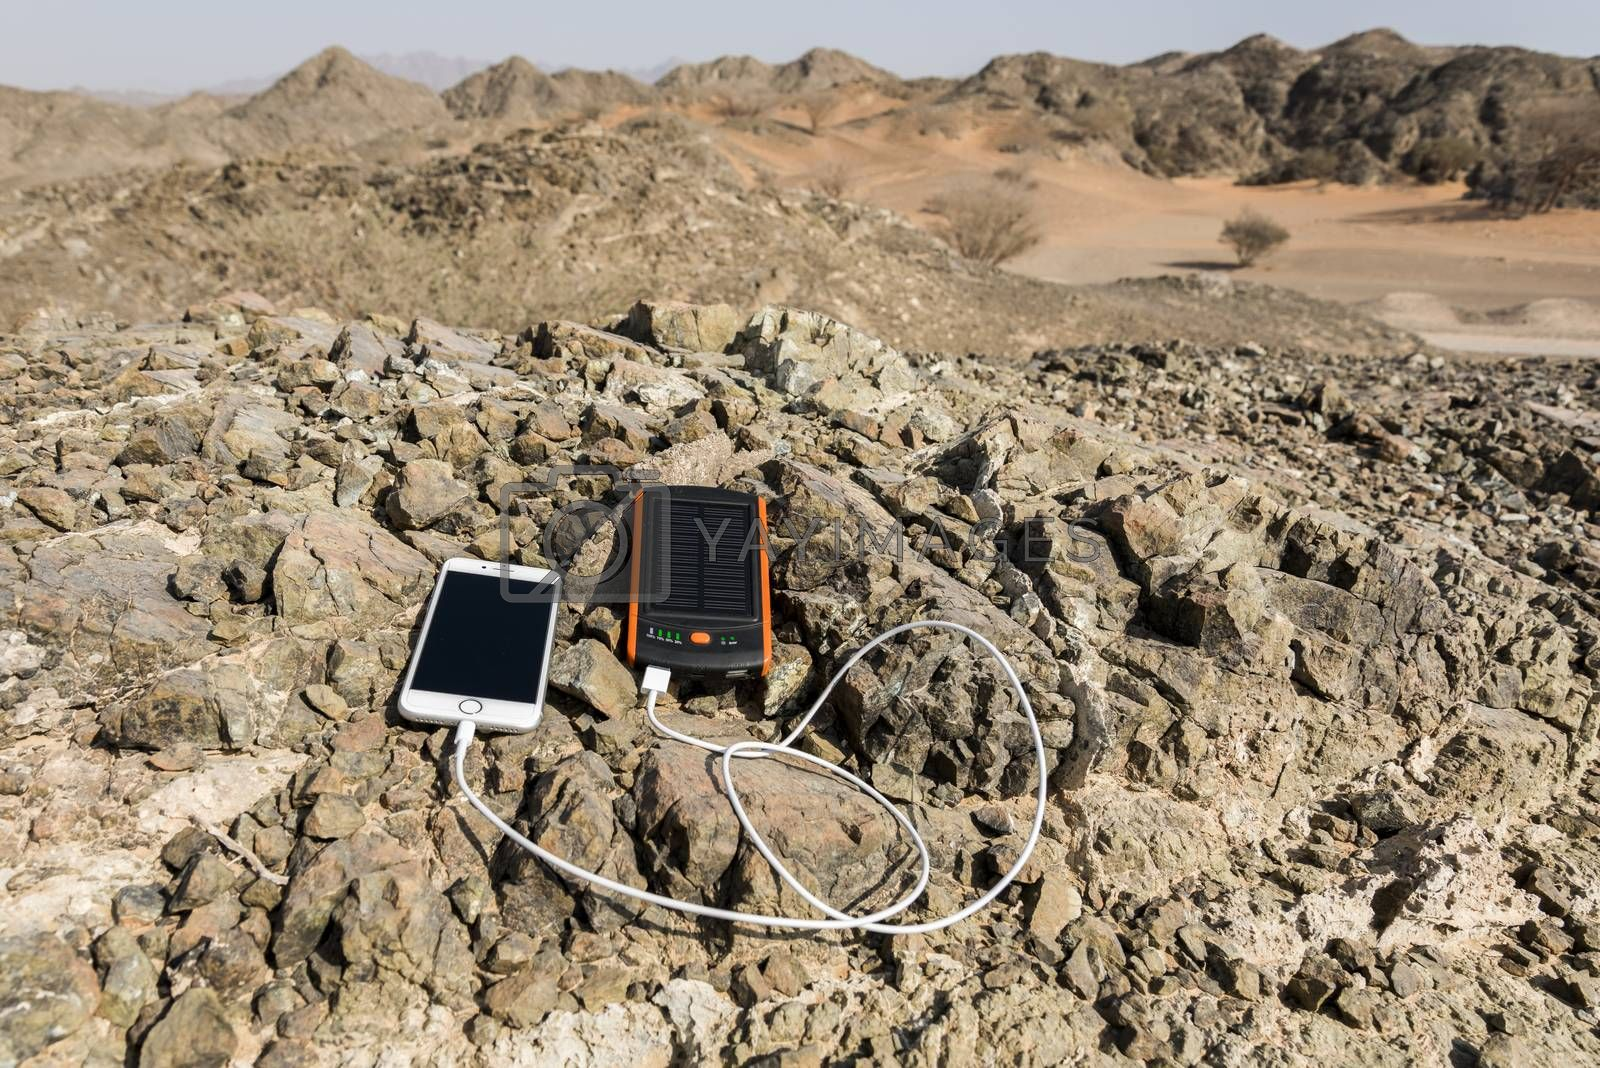 Smartphone charging with solar power bank with Dual USB port. These gadgets are lying on rocks, in the deserted mountain with some sand dunes in background.